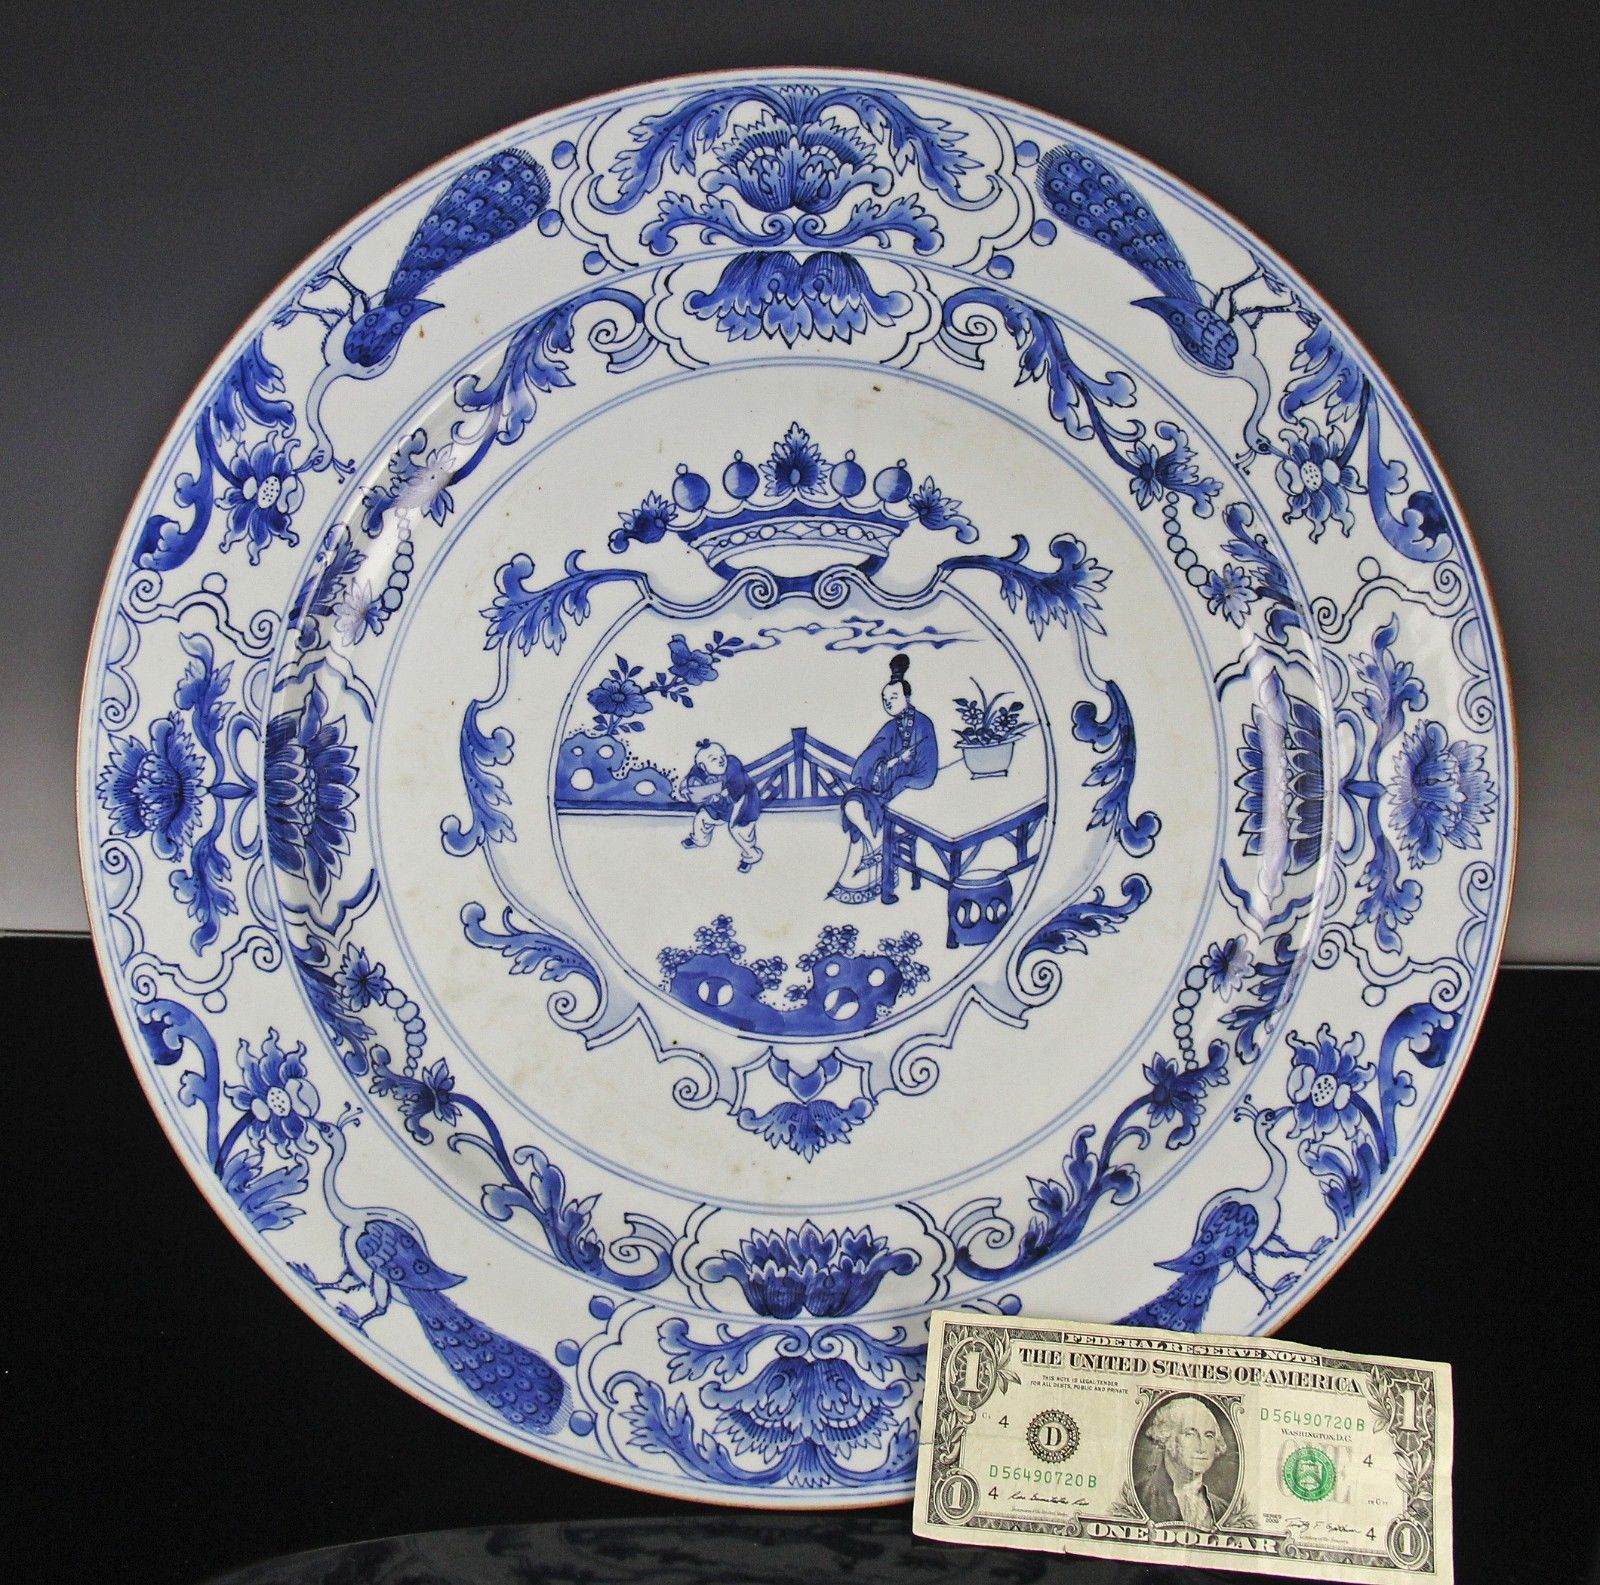 China antique Porcelain Blue and white Hand-painted Landscape plate